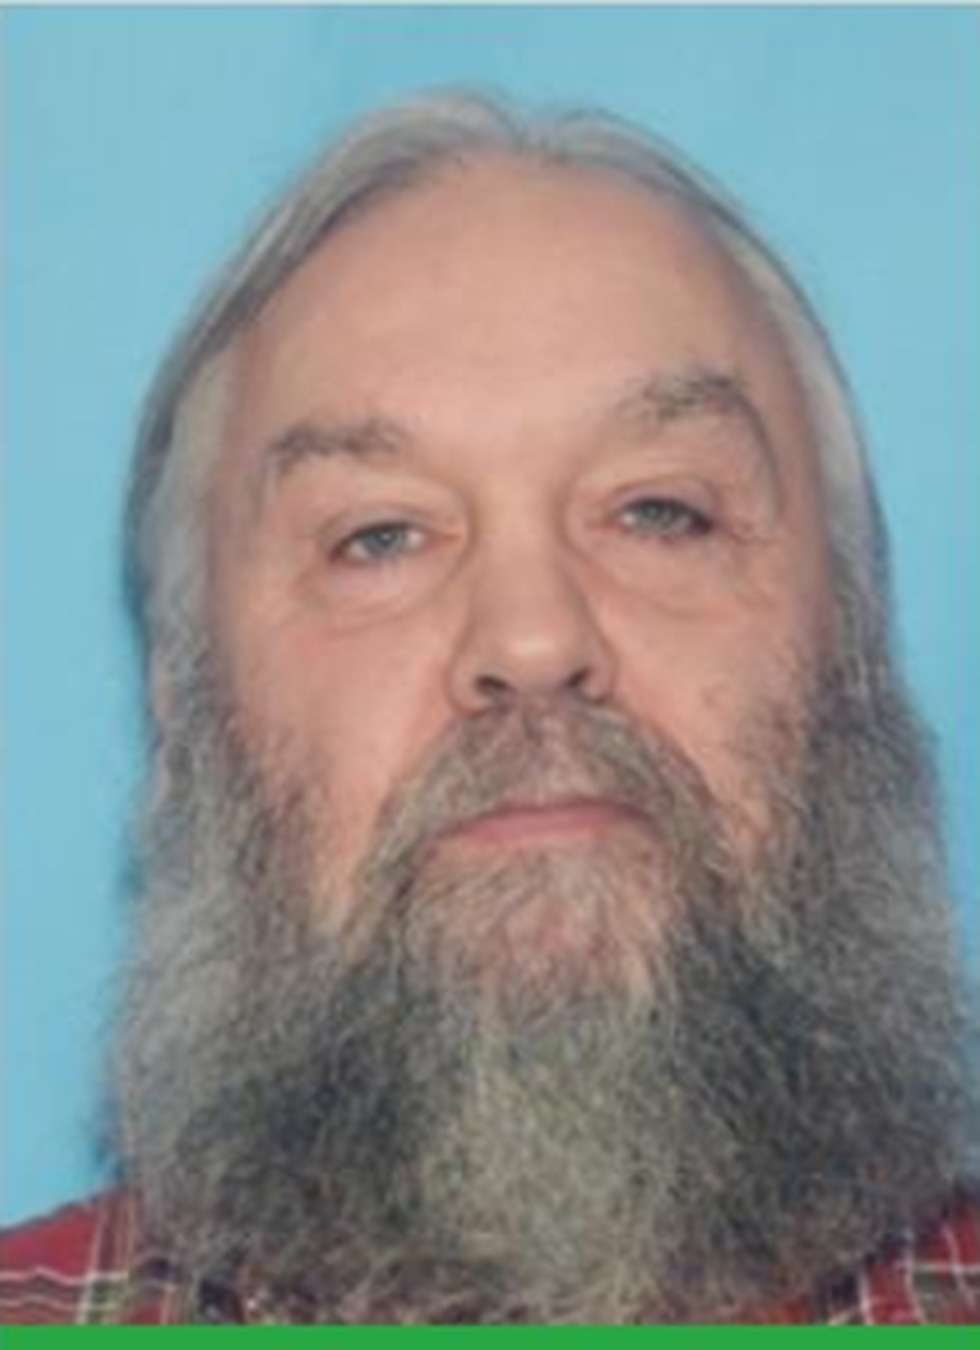 Alaska State Troopers took Mark Emery Heinz into custody Saturday afternoon near Gakona.   Trooper reported Heinz refused to yield and shot at them during a vehicle chase Friday. They they returned fire, but Heinz abandoned his vehicle and ran into the woods.